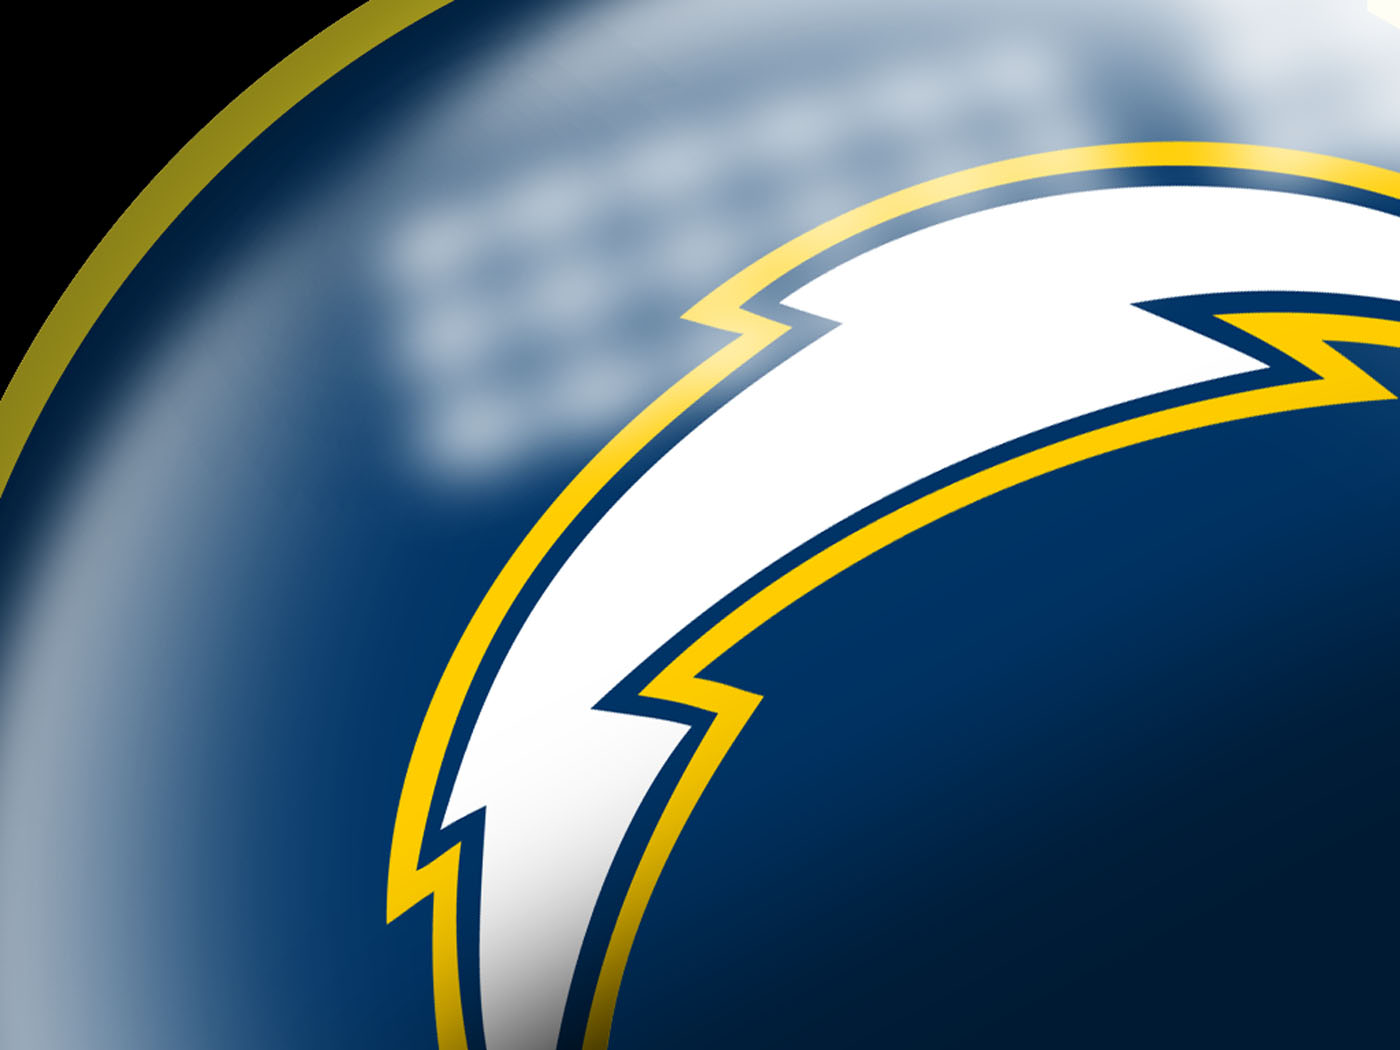 Free Download San Diego Chargers Helmet Gatorpaper Sports Desktop